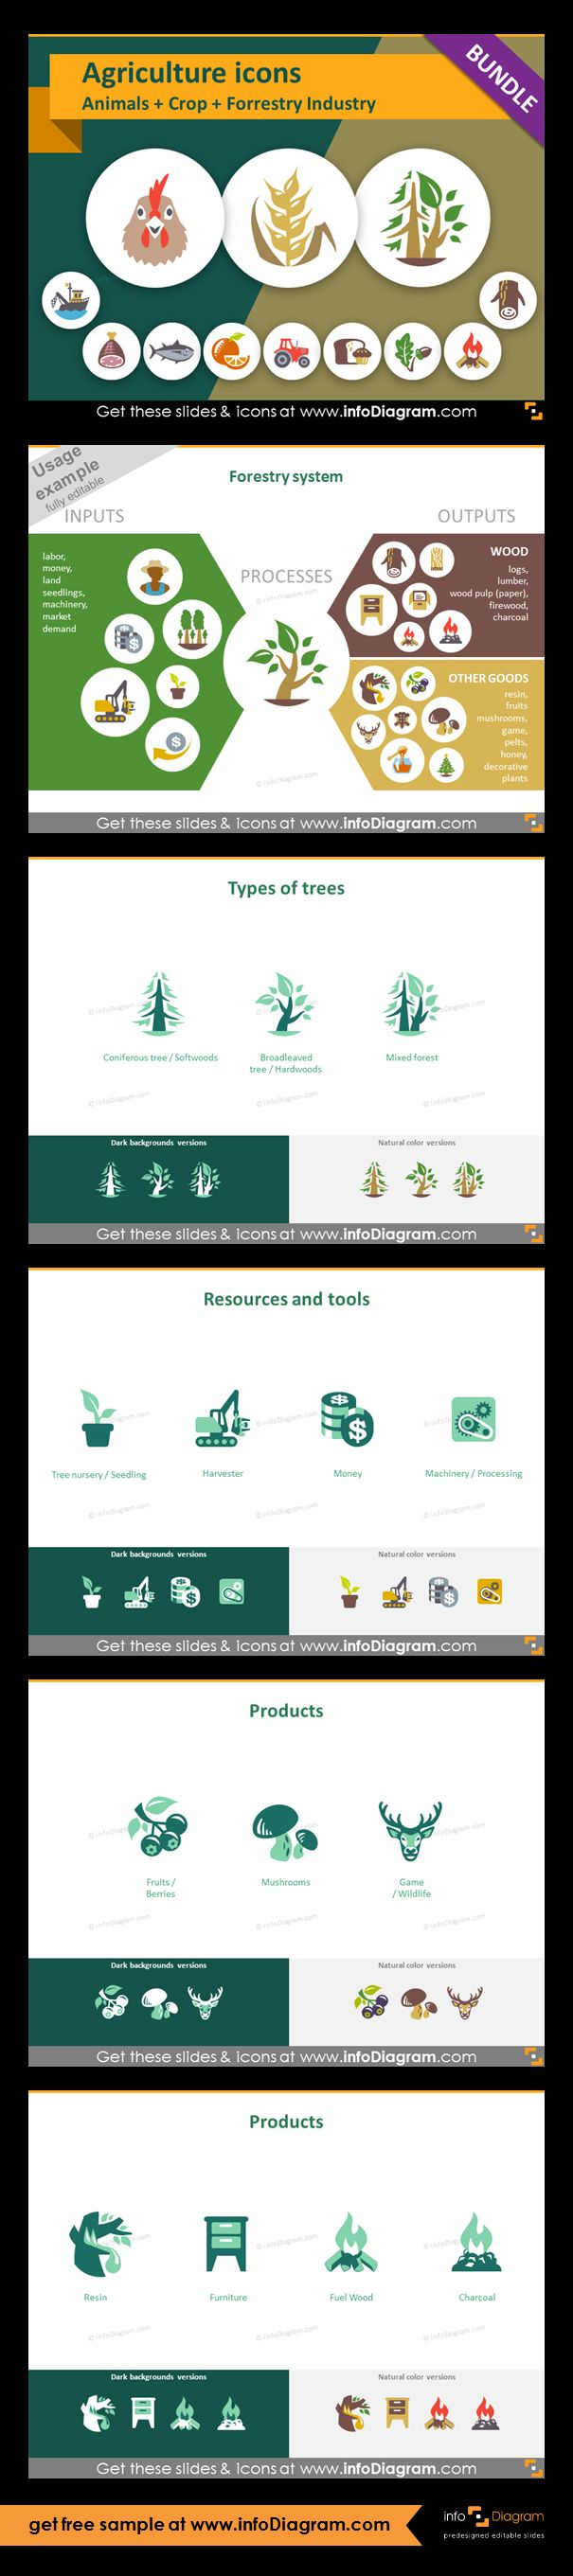 Food and Agriculture icons: Animals, Crop Cultivation, Forestry. All symbols in simple flat style, suitable for Metro UI style graphics. Icons provided in 5 versions. Graphic presenting forestry process with icons of inputs and outputs. Icons showing types of trees and forests. Graphics of: softwoods, hardwoods, mixed forest. Resources and tools in forestry and wood industry. Icons of: seeding, harvester, money, machinery. Products from forestry and wood industry: fruits, mushrooms…